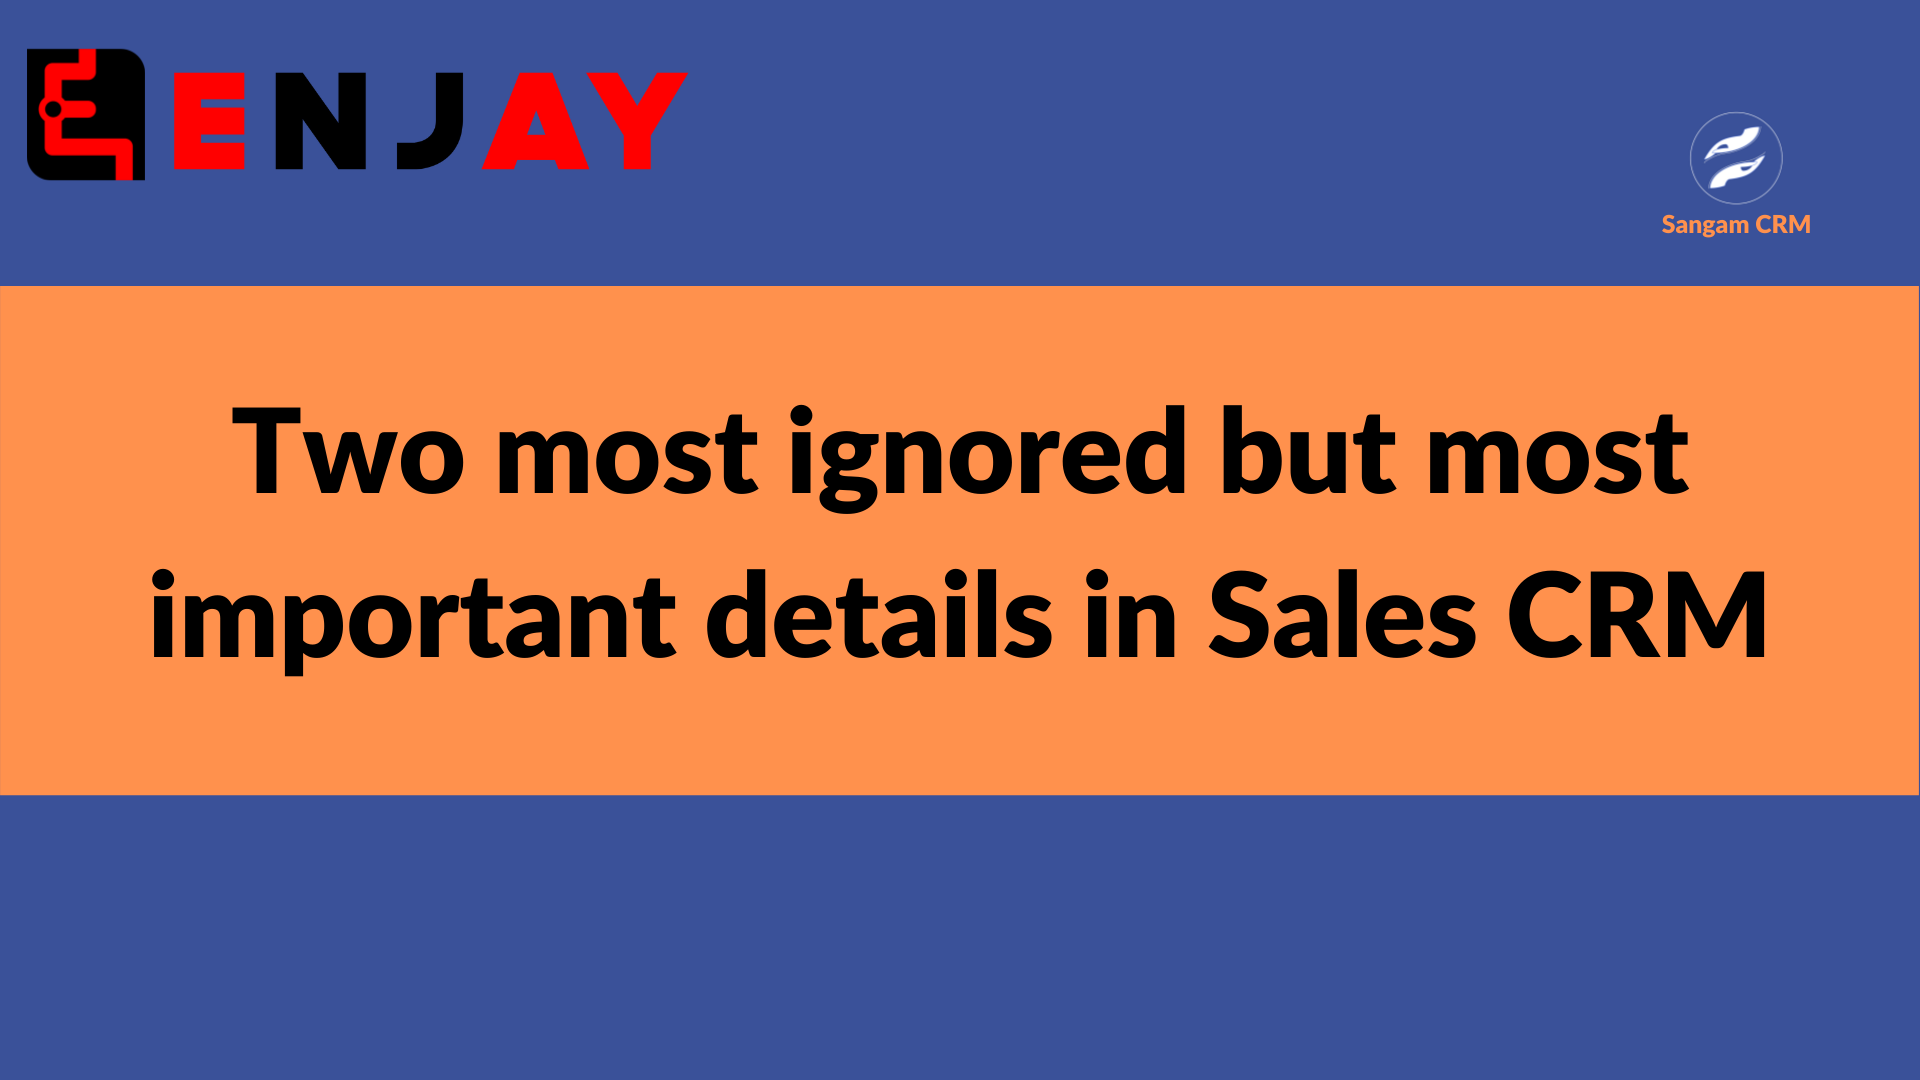 Two most ignored but most important details in Sales CRM